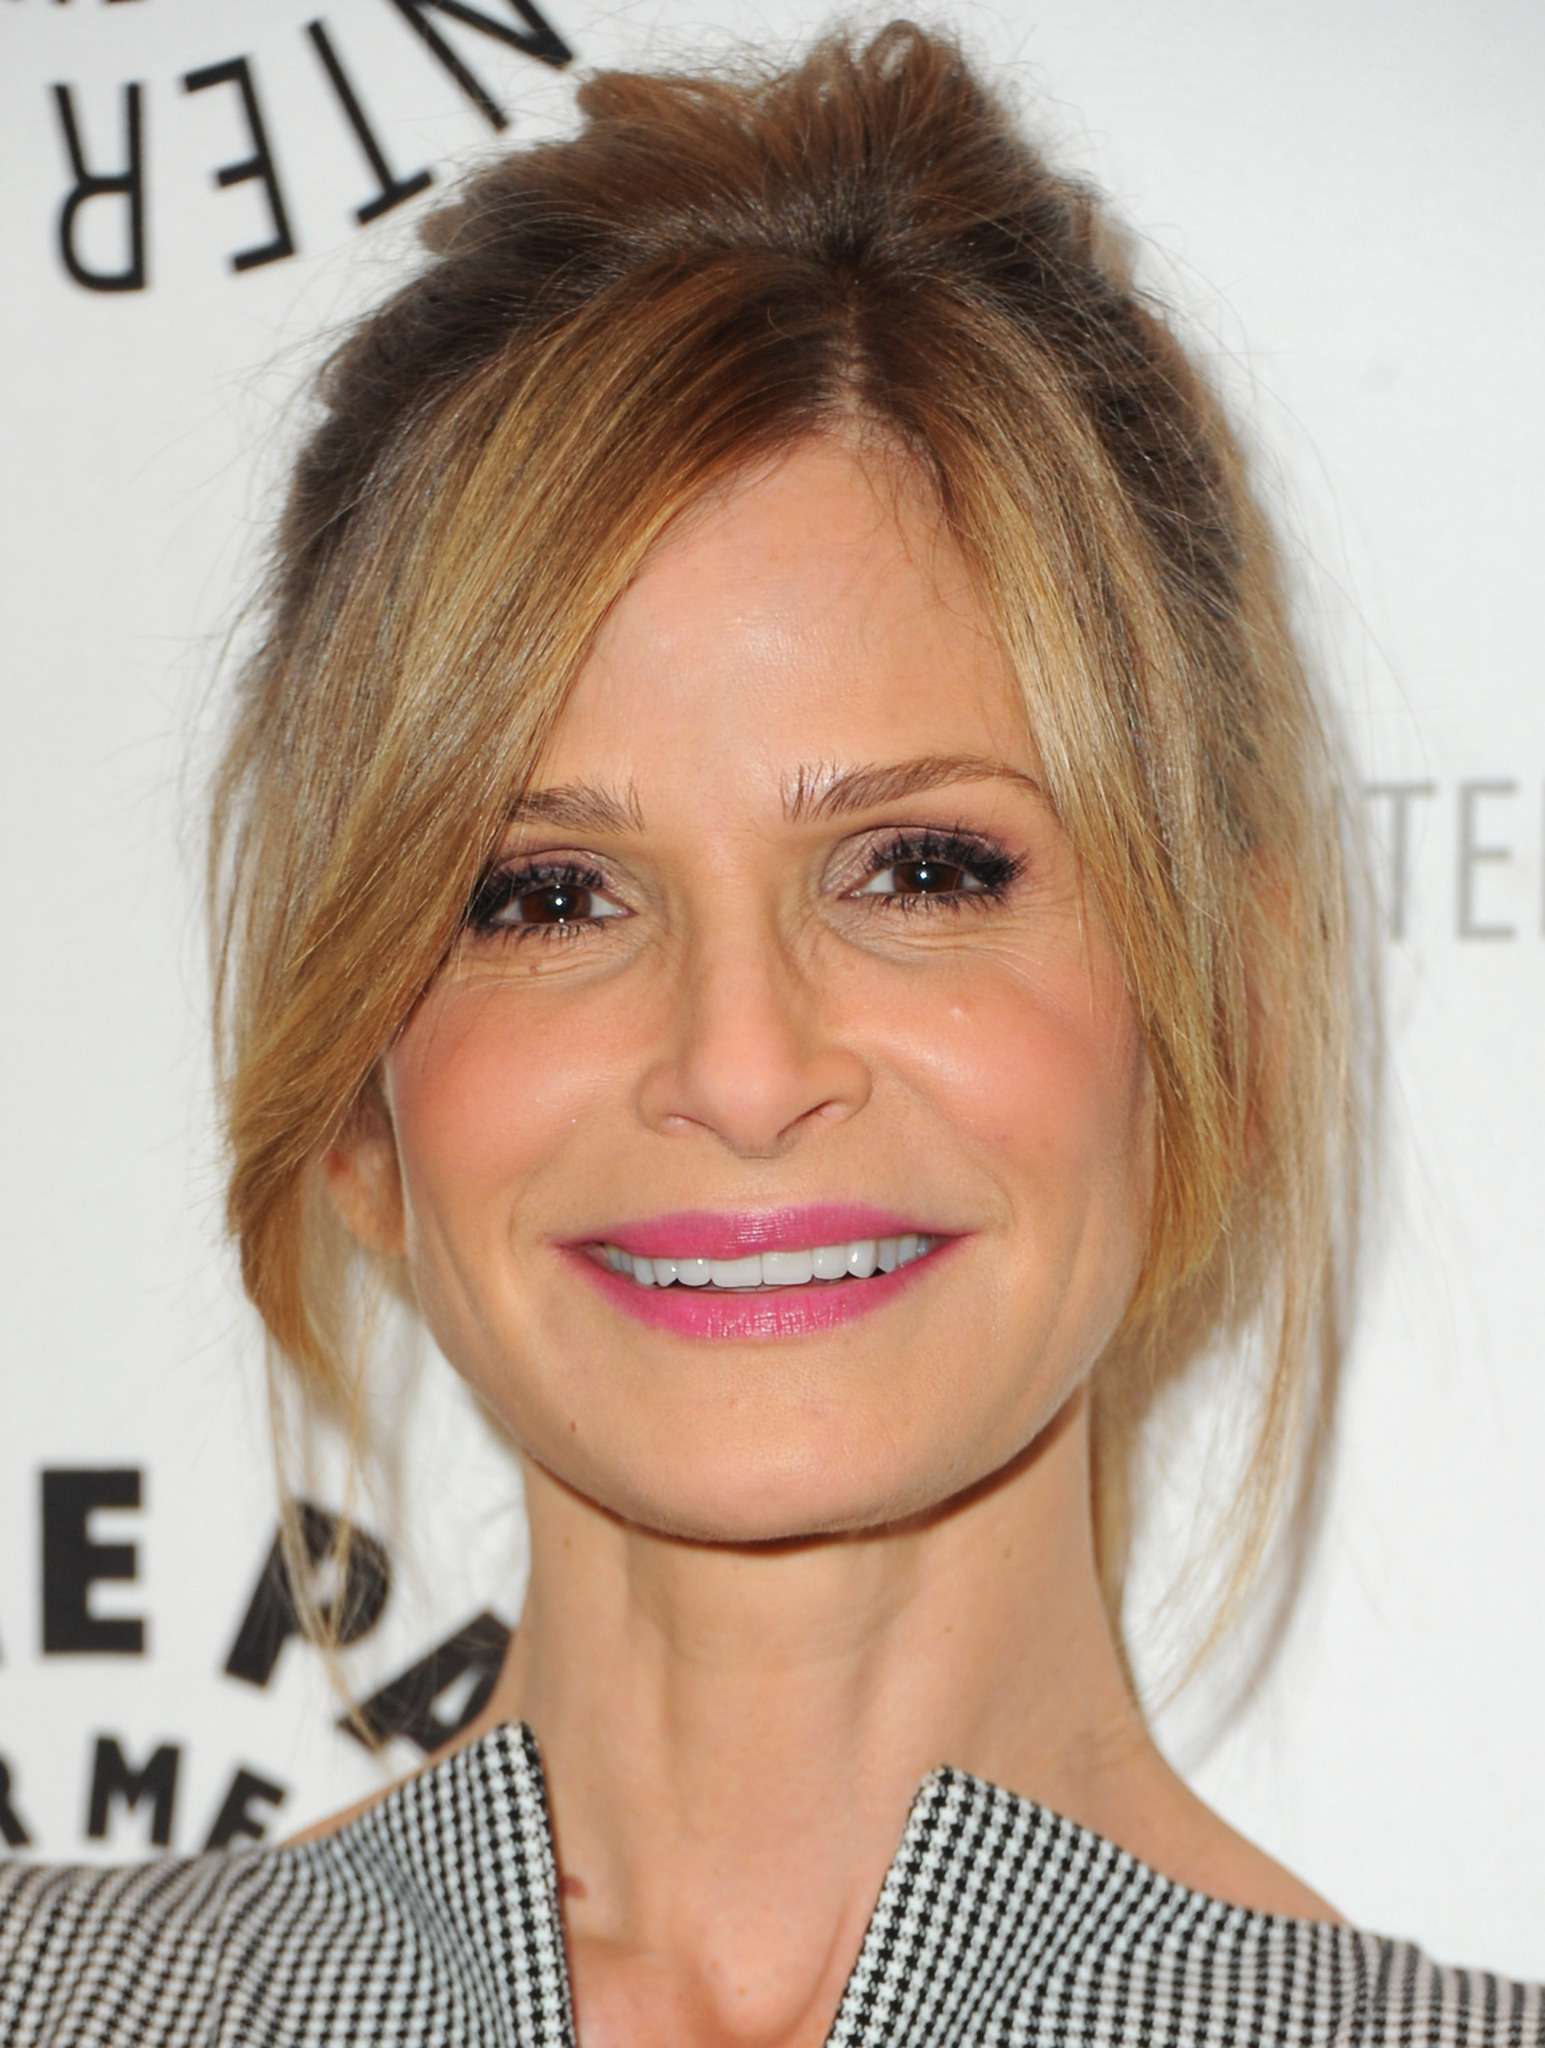 Kyra Sedgwick at an event for The Closer (2005)